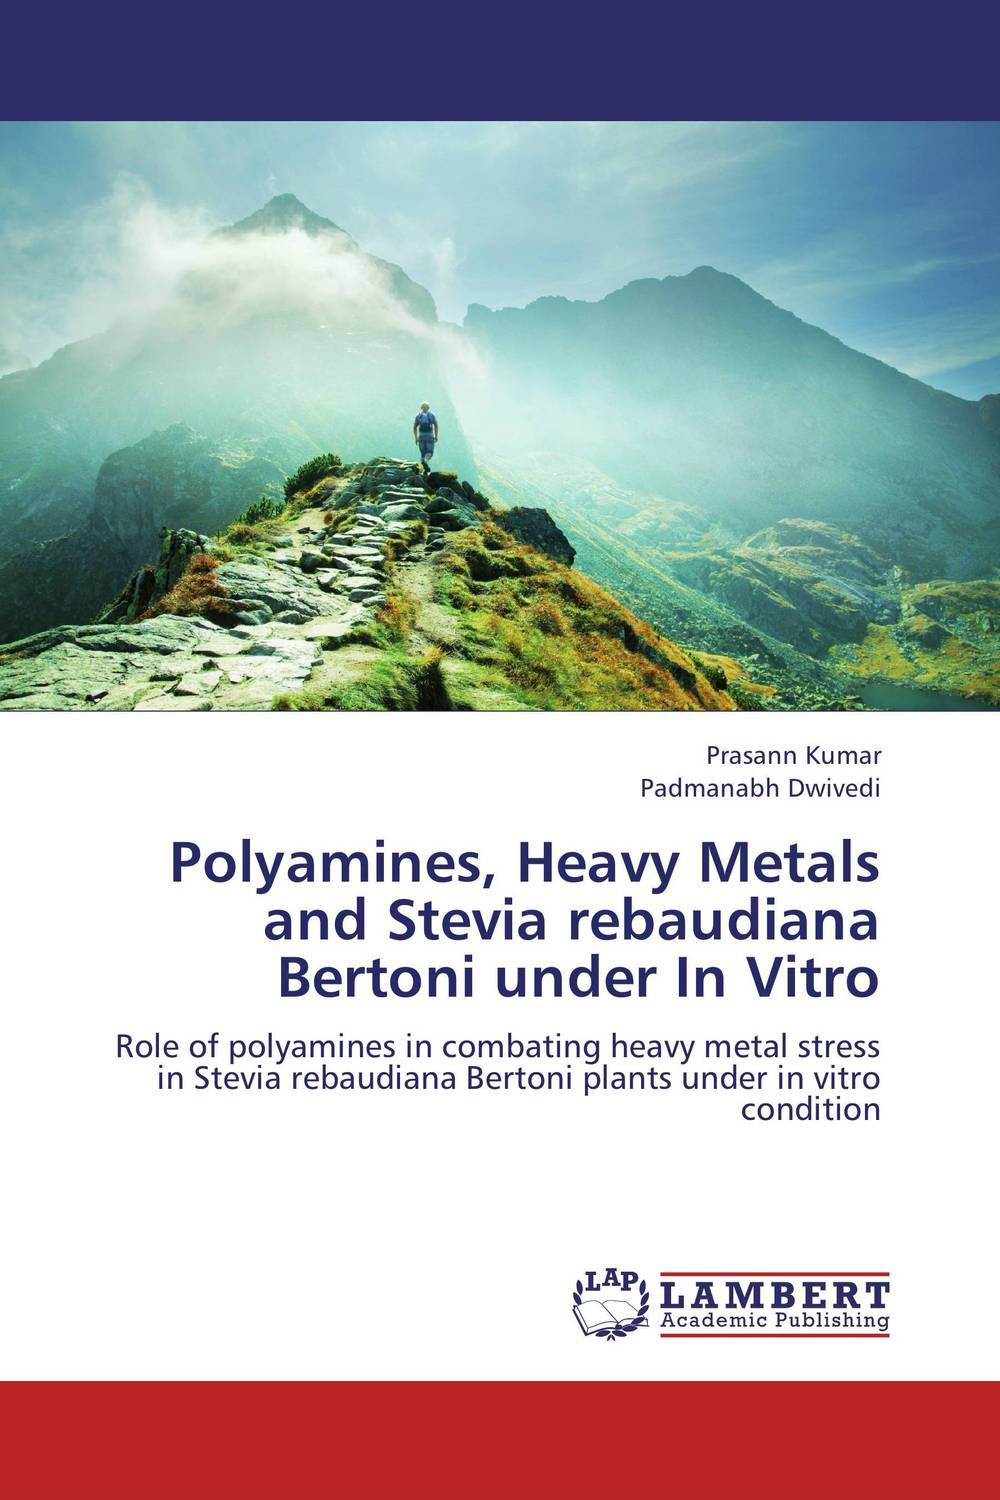 Polyamines, Heavy Metals and Stevia rebaudiana Bertoni under In Vitro